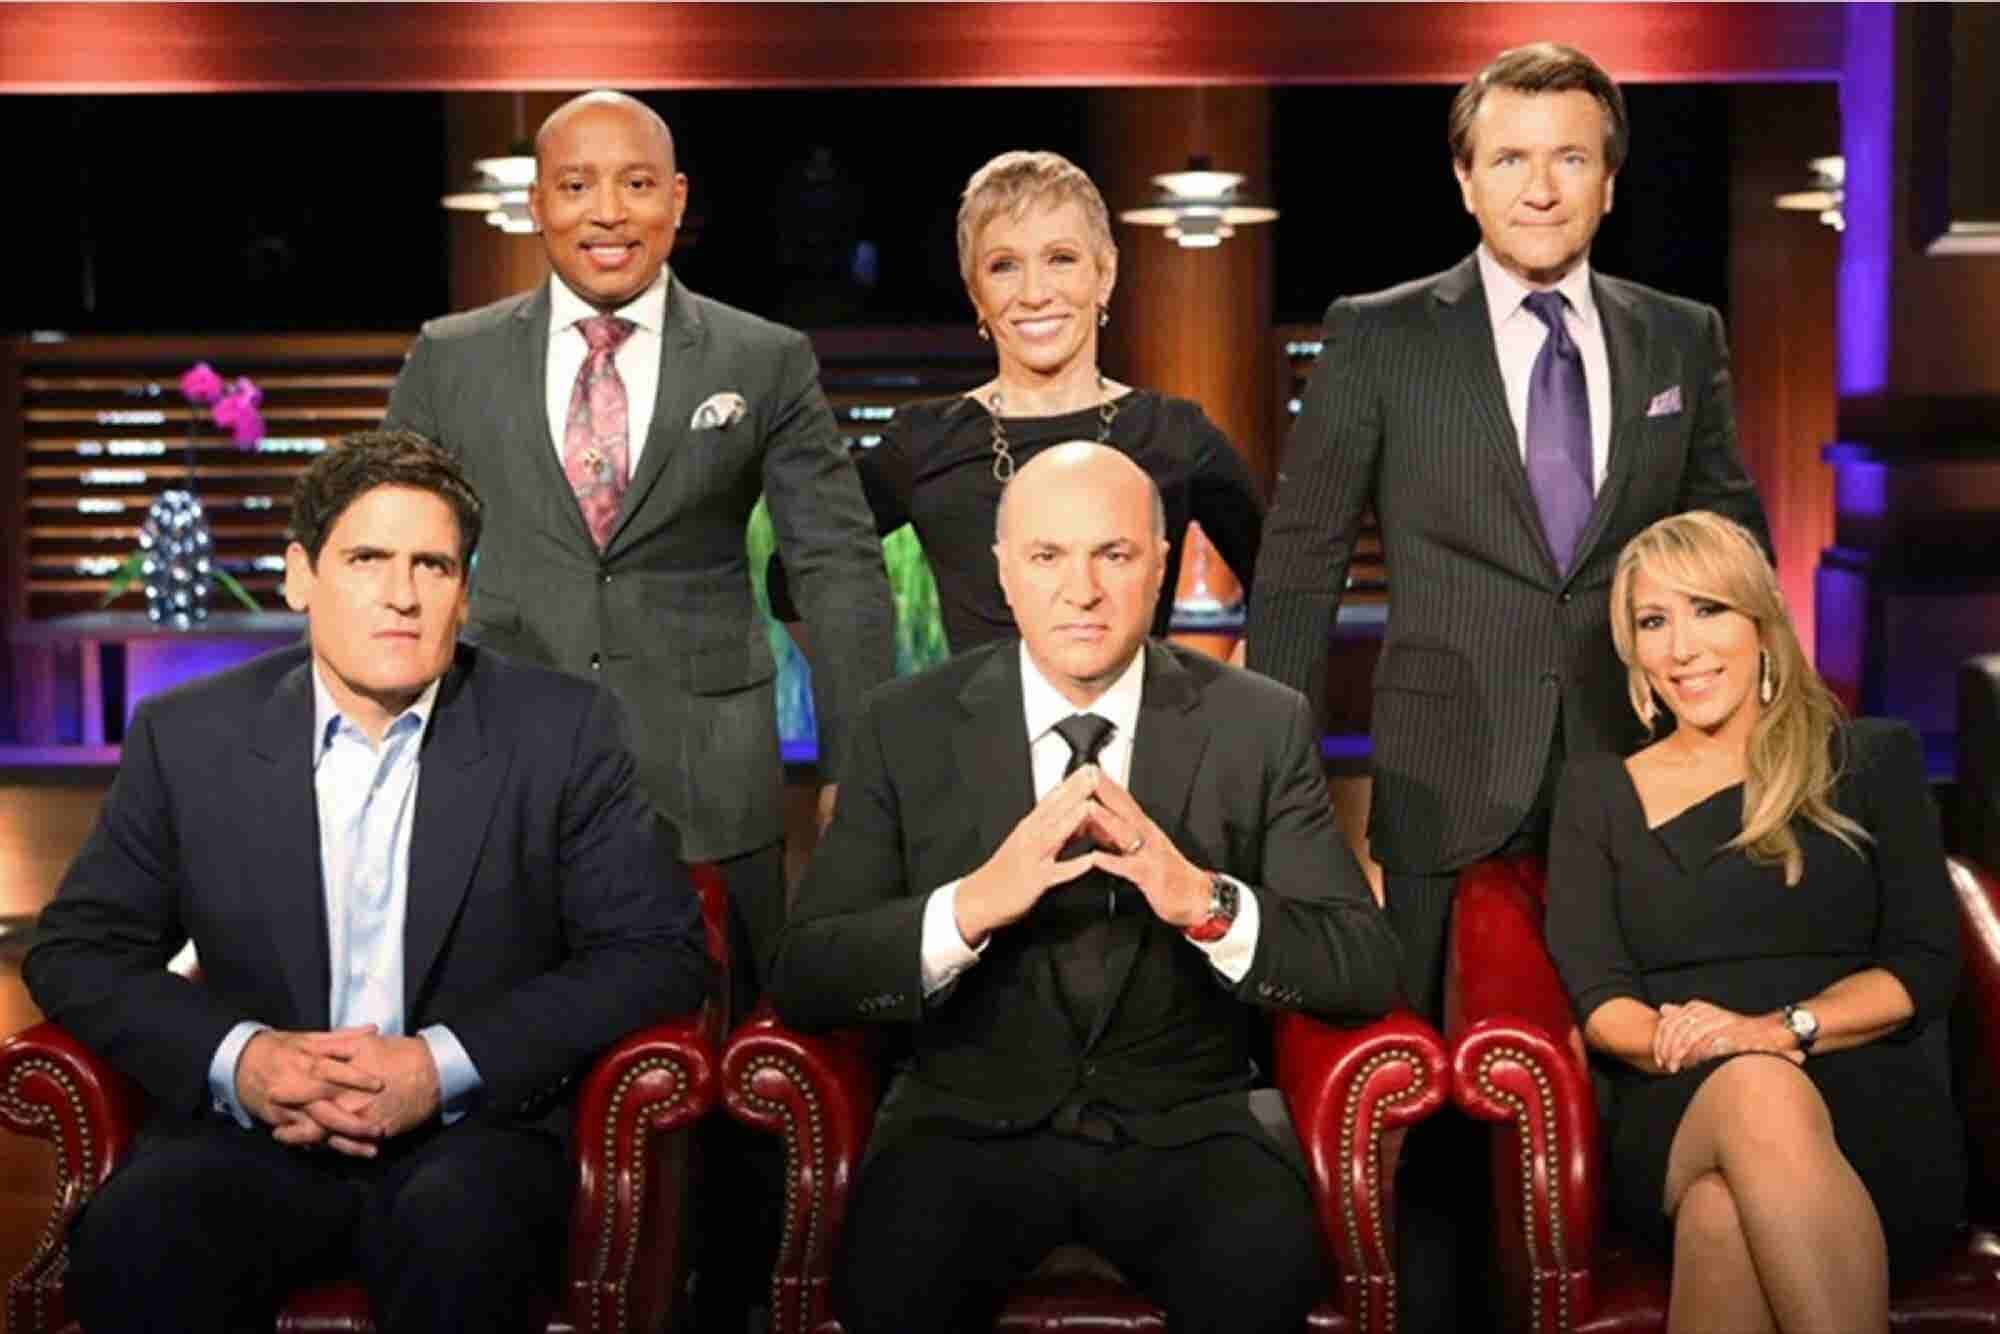 The 'Shark Tank' Enjoys an Embarrassment of Riches: 4 Strong Proposals